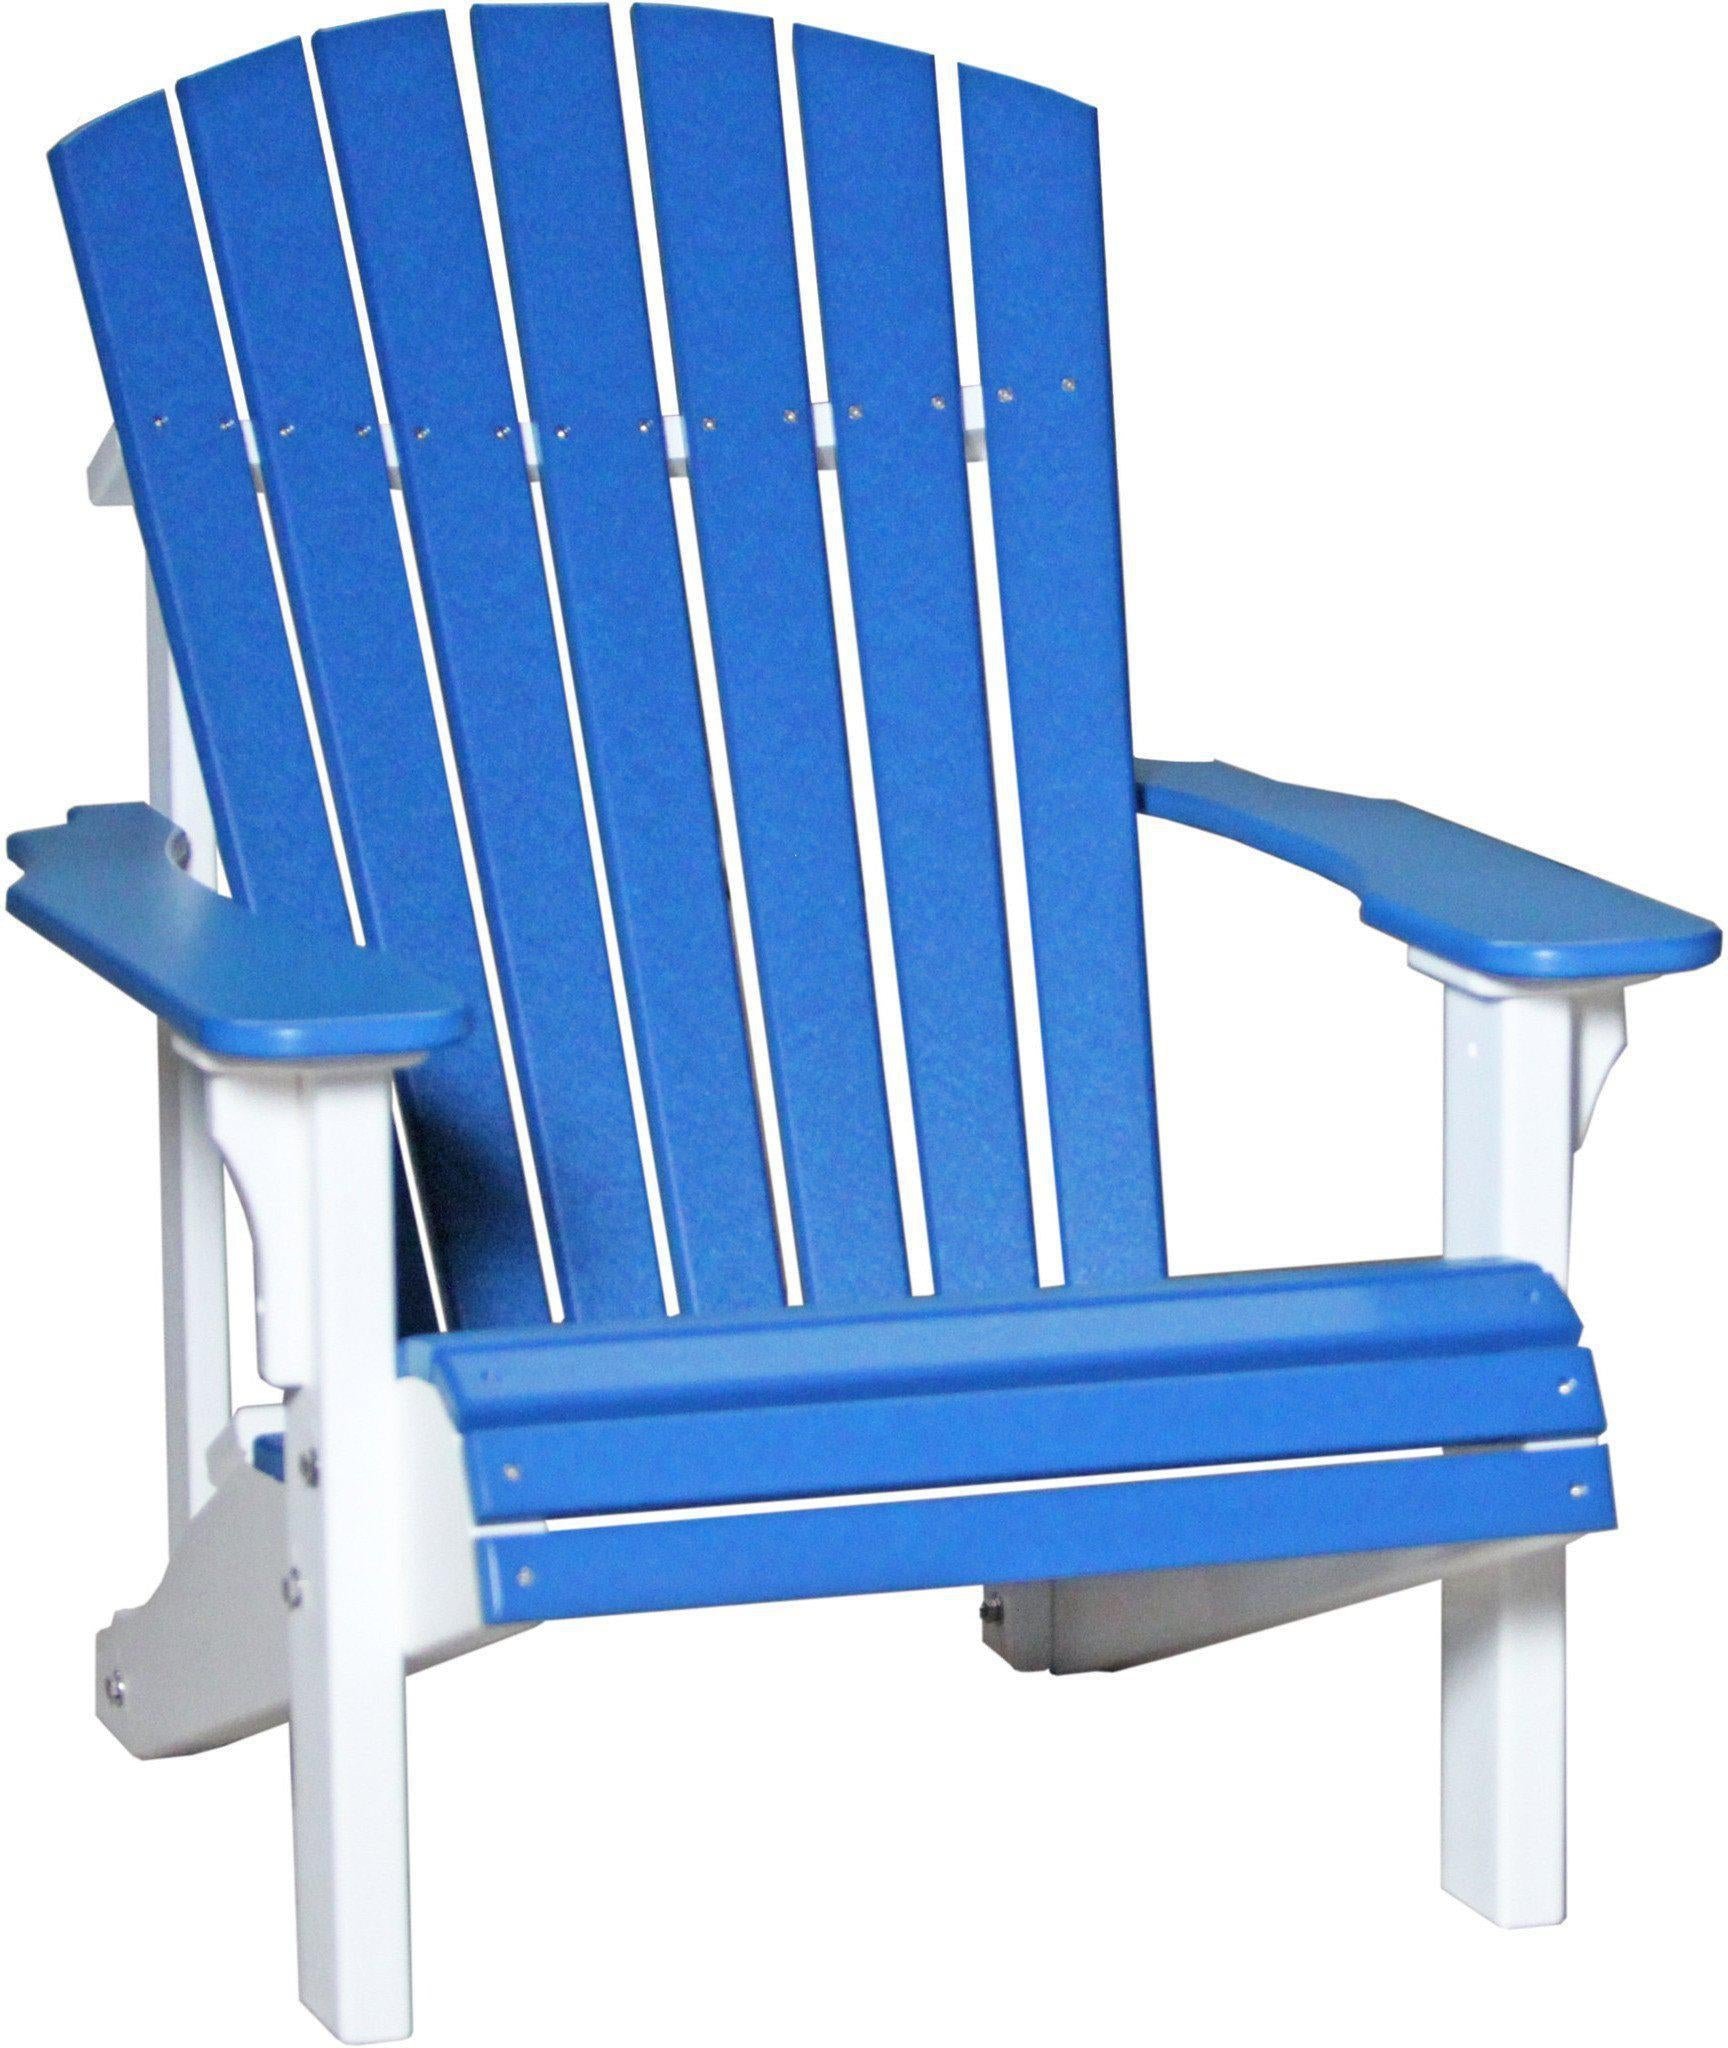 LuxCraft Recycled Plastic Deluxe Adirondack Chair Rocking Furniture